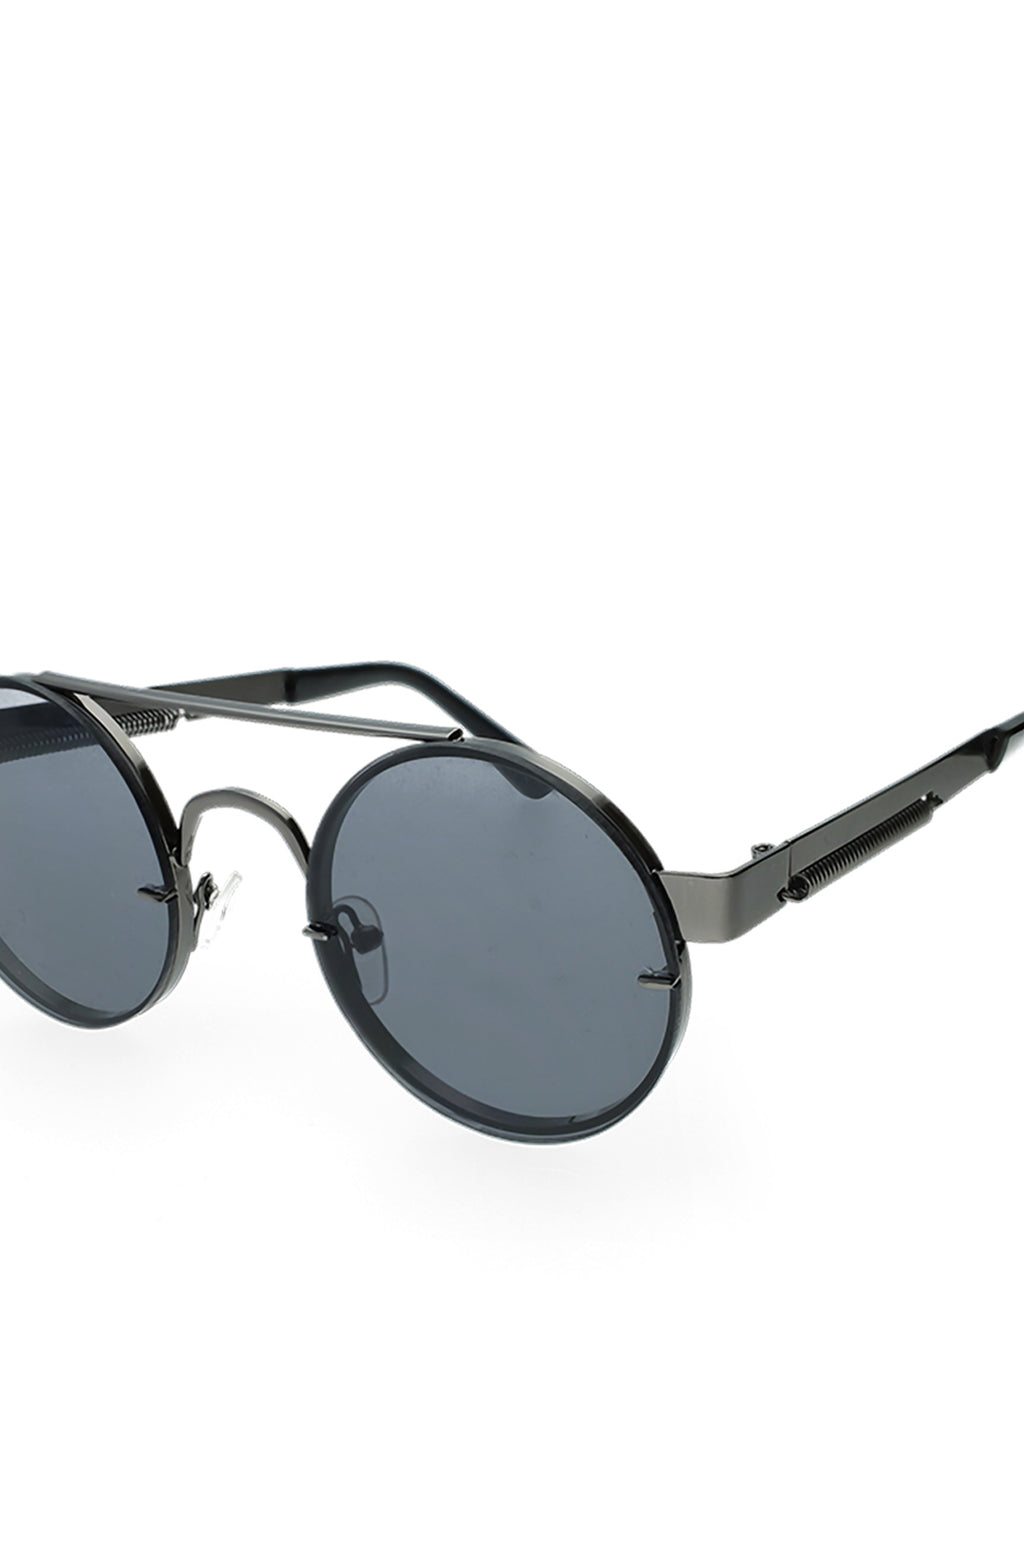 Cermak Fashion Aviator Sunglasses _ 121247 _ Black